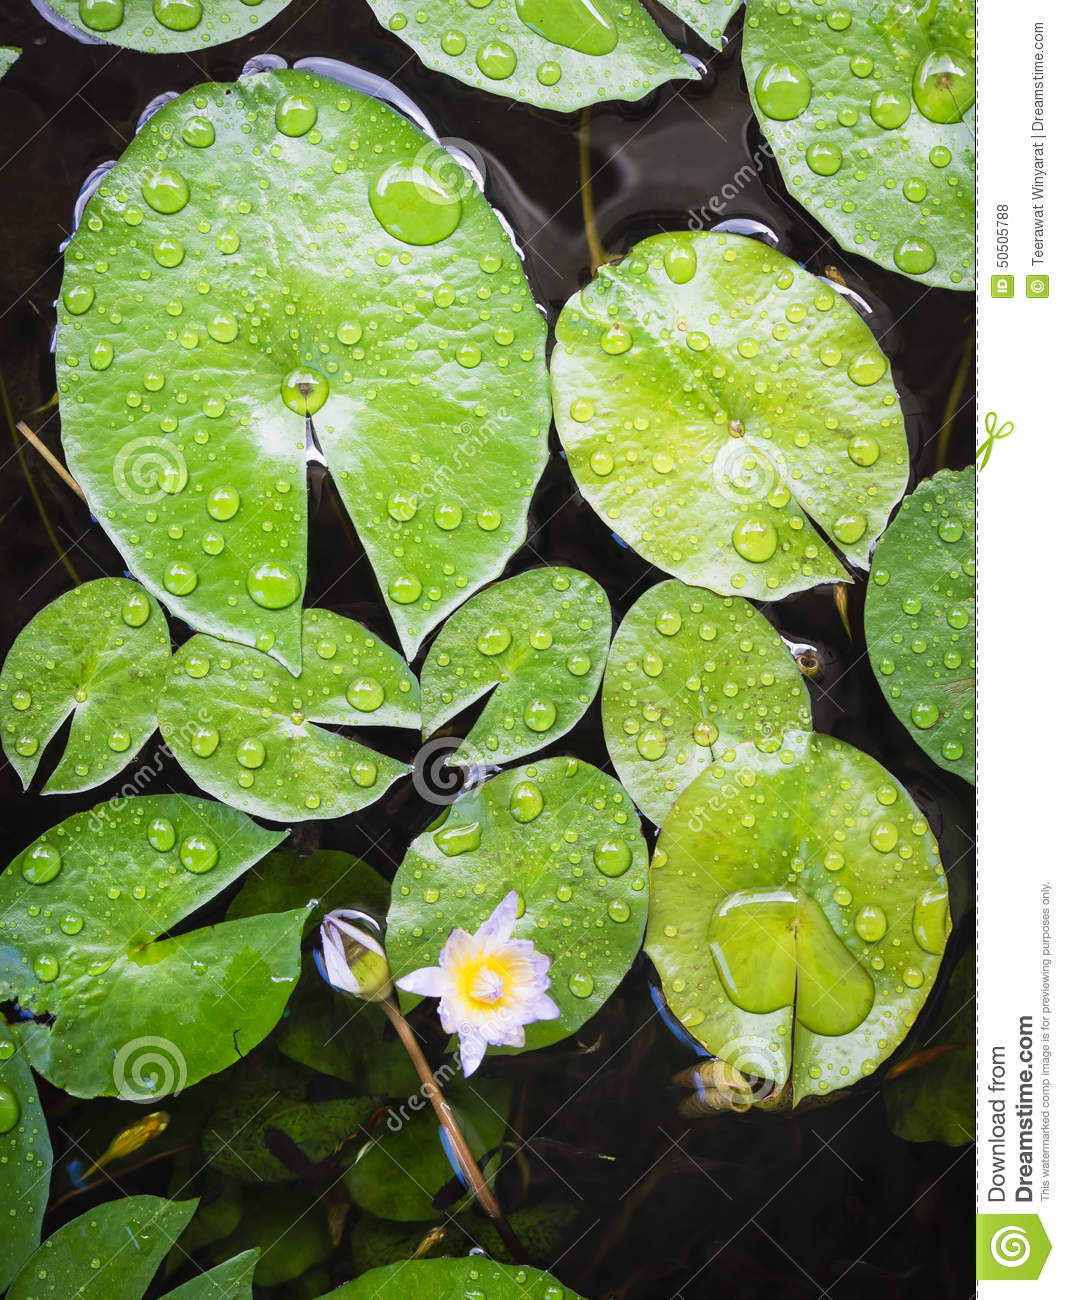 Nature Images 2mb: Lotus Leaves With Drop Of Water Top View Stock Photo